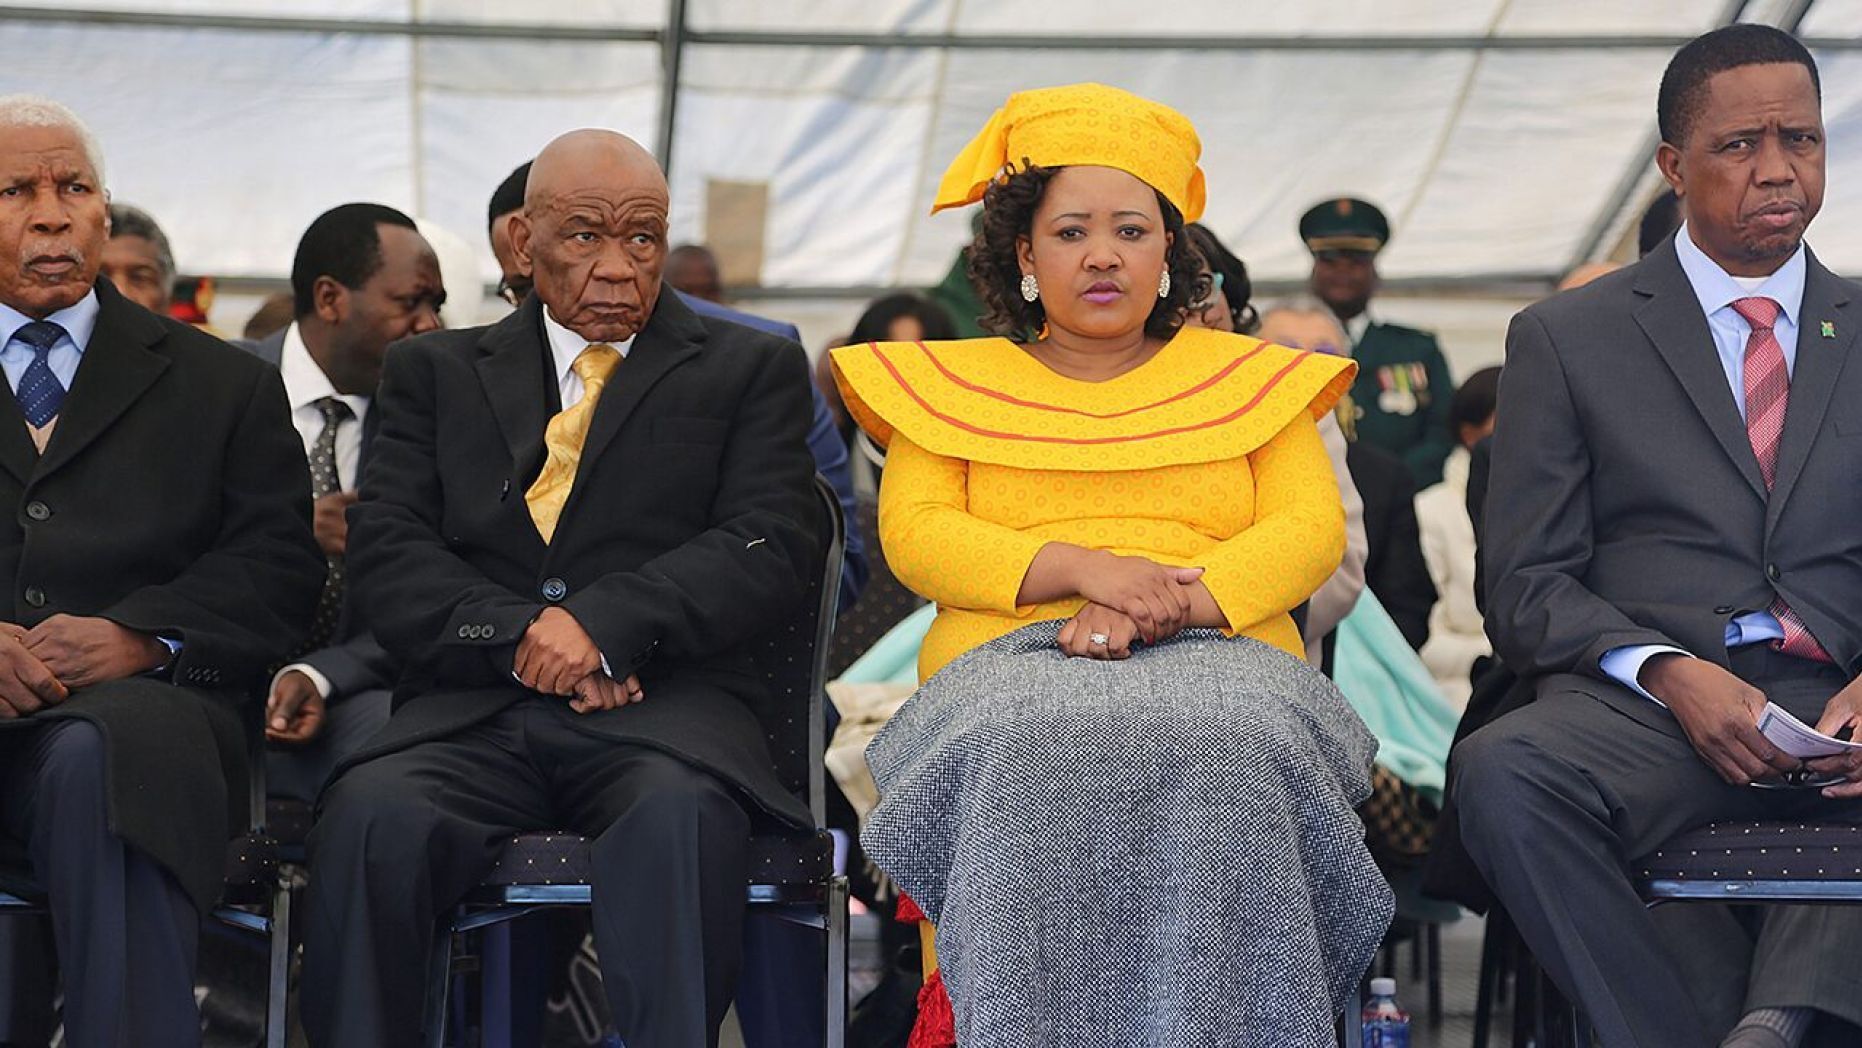 Newly appointed Lesotho prime Minister Thomas Thabane, left, leader of the All Basotho Convention (ABC) political party, his wife 'Ma Isaiah Ramoholi Thabane and Zambian President Edgar Lungu, right, attend Thabane's inauguration.